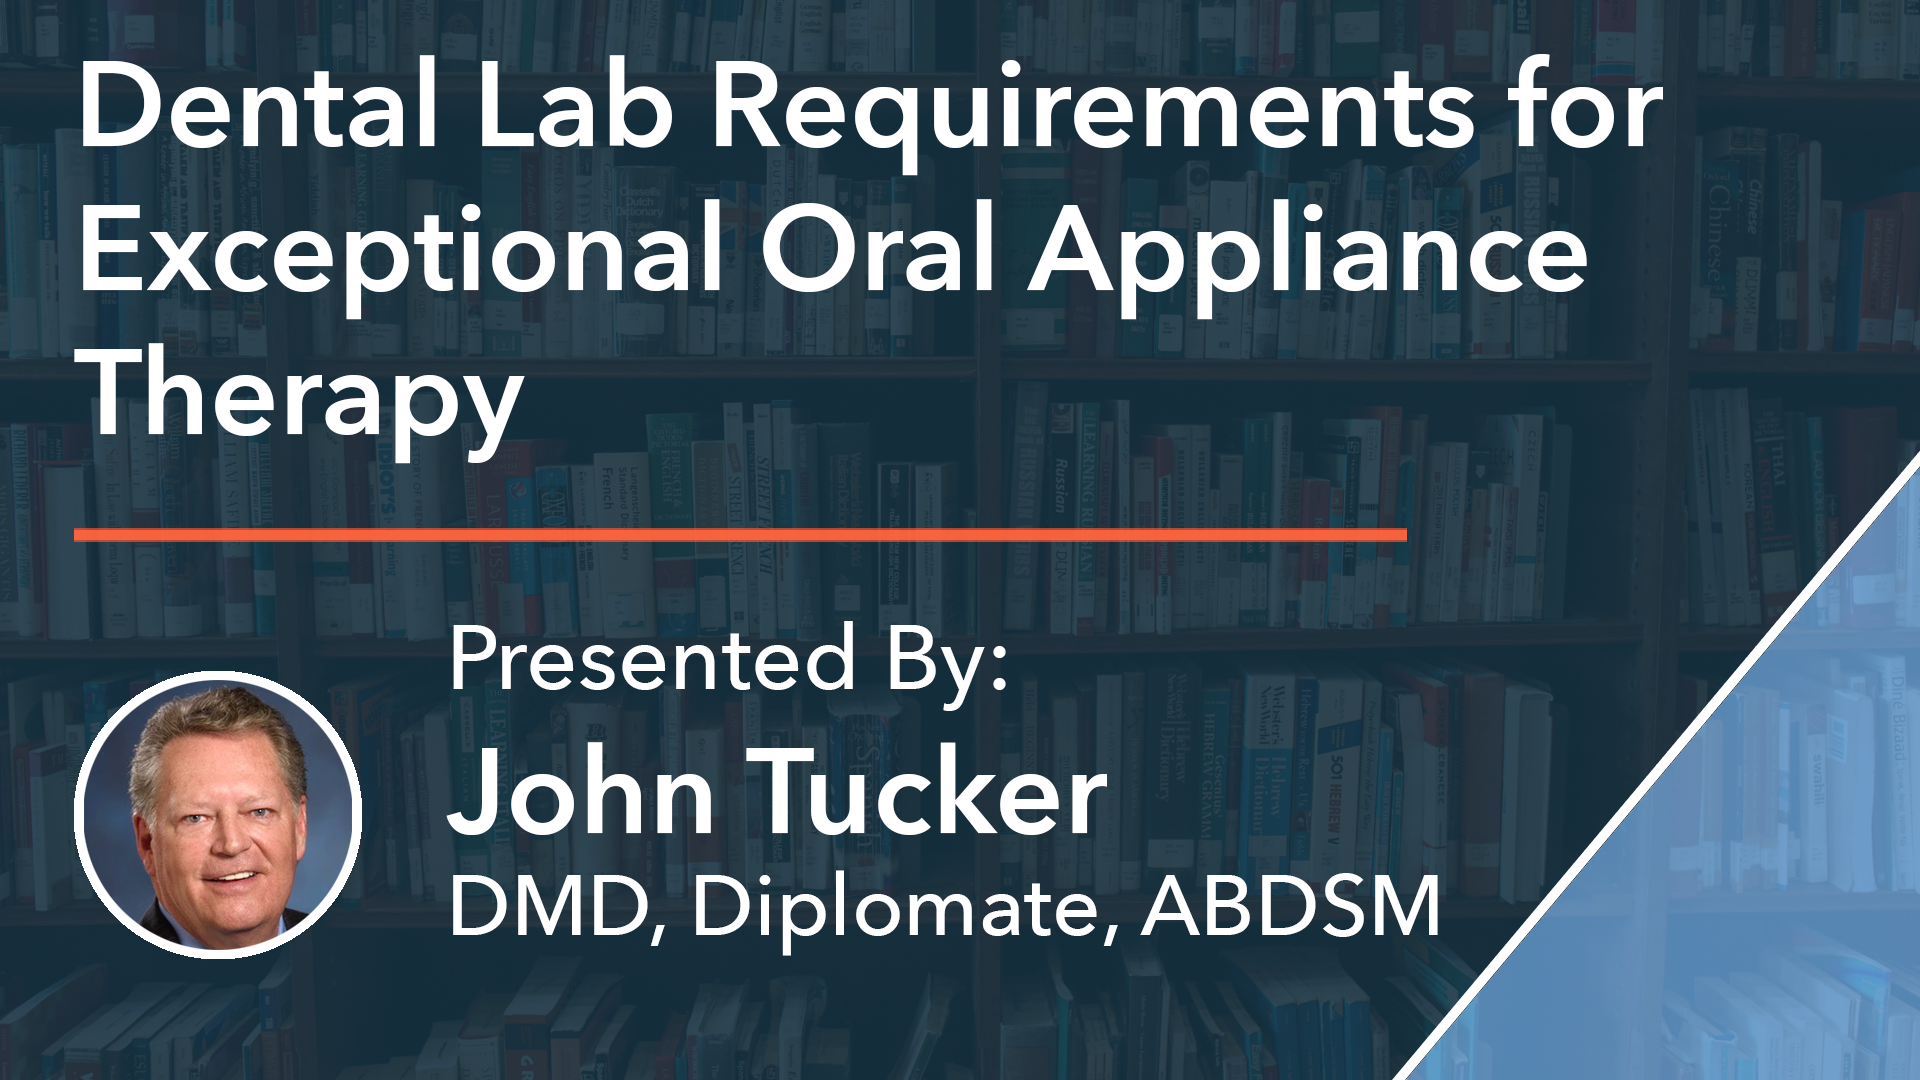 Dental Lab Requirements for Exceptional Oral Appliance Therapy Dr John Tucker